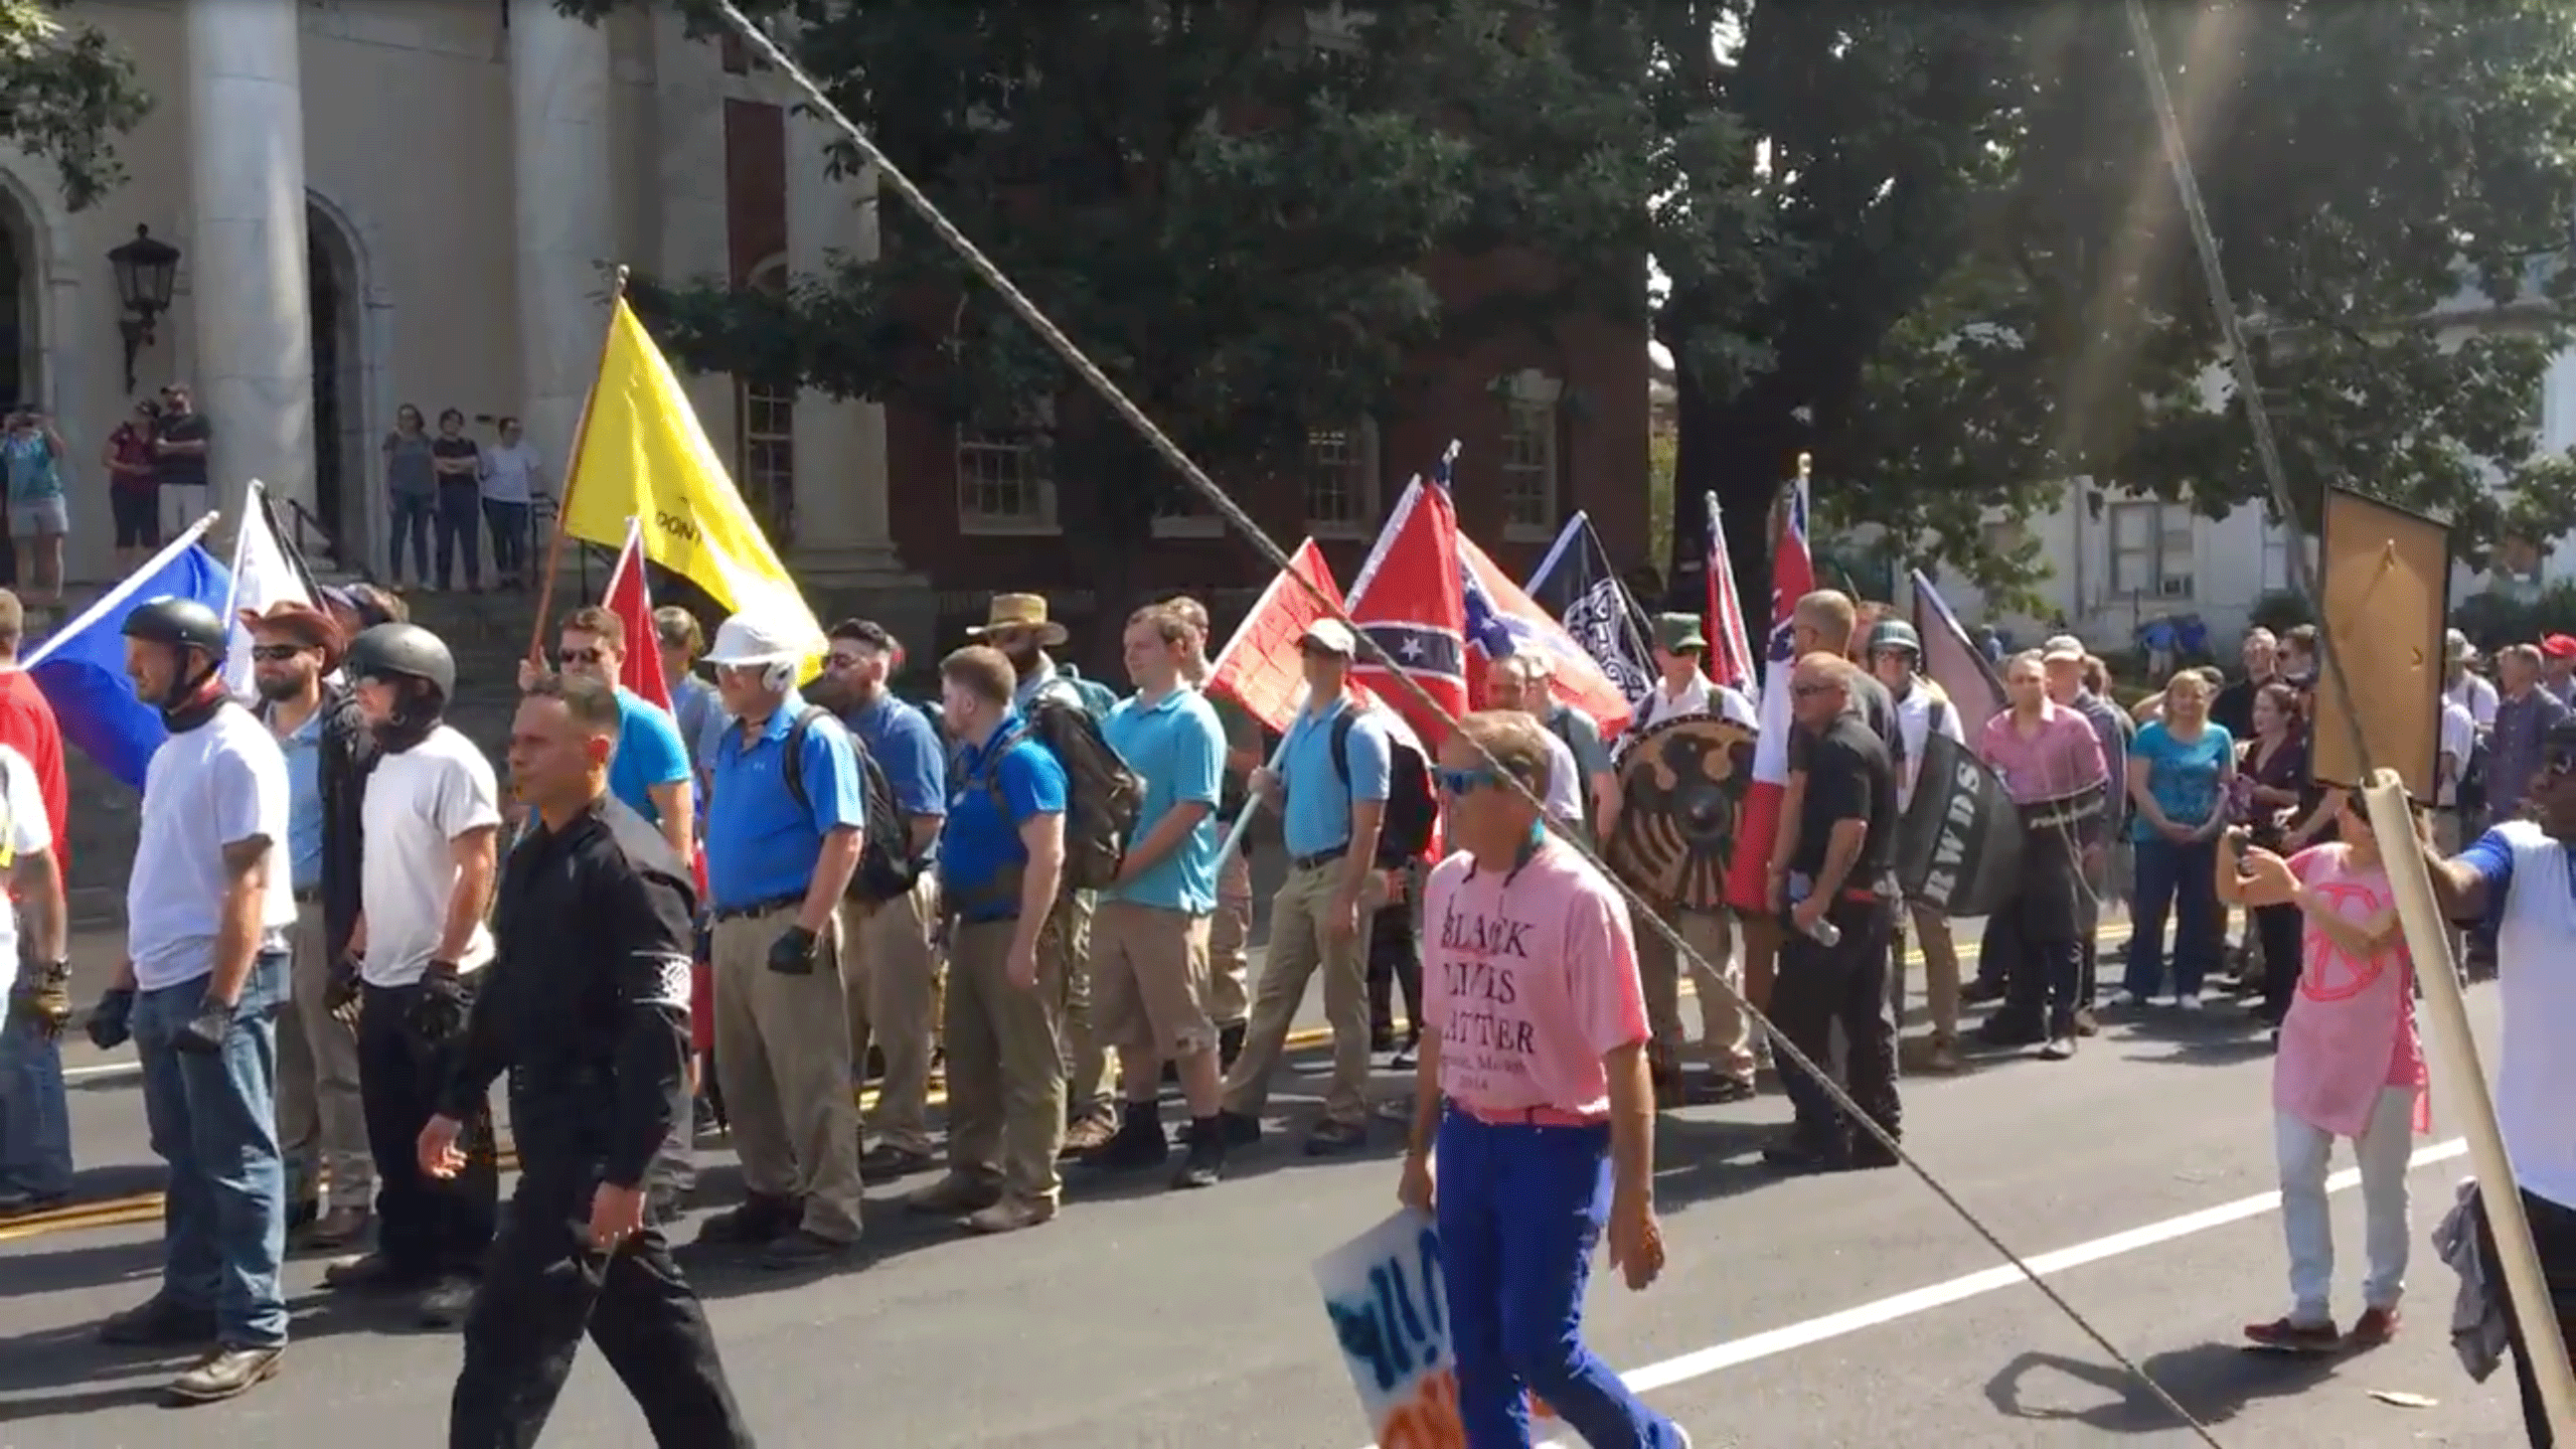 ID members in Charlottesville